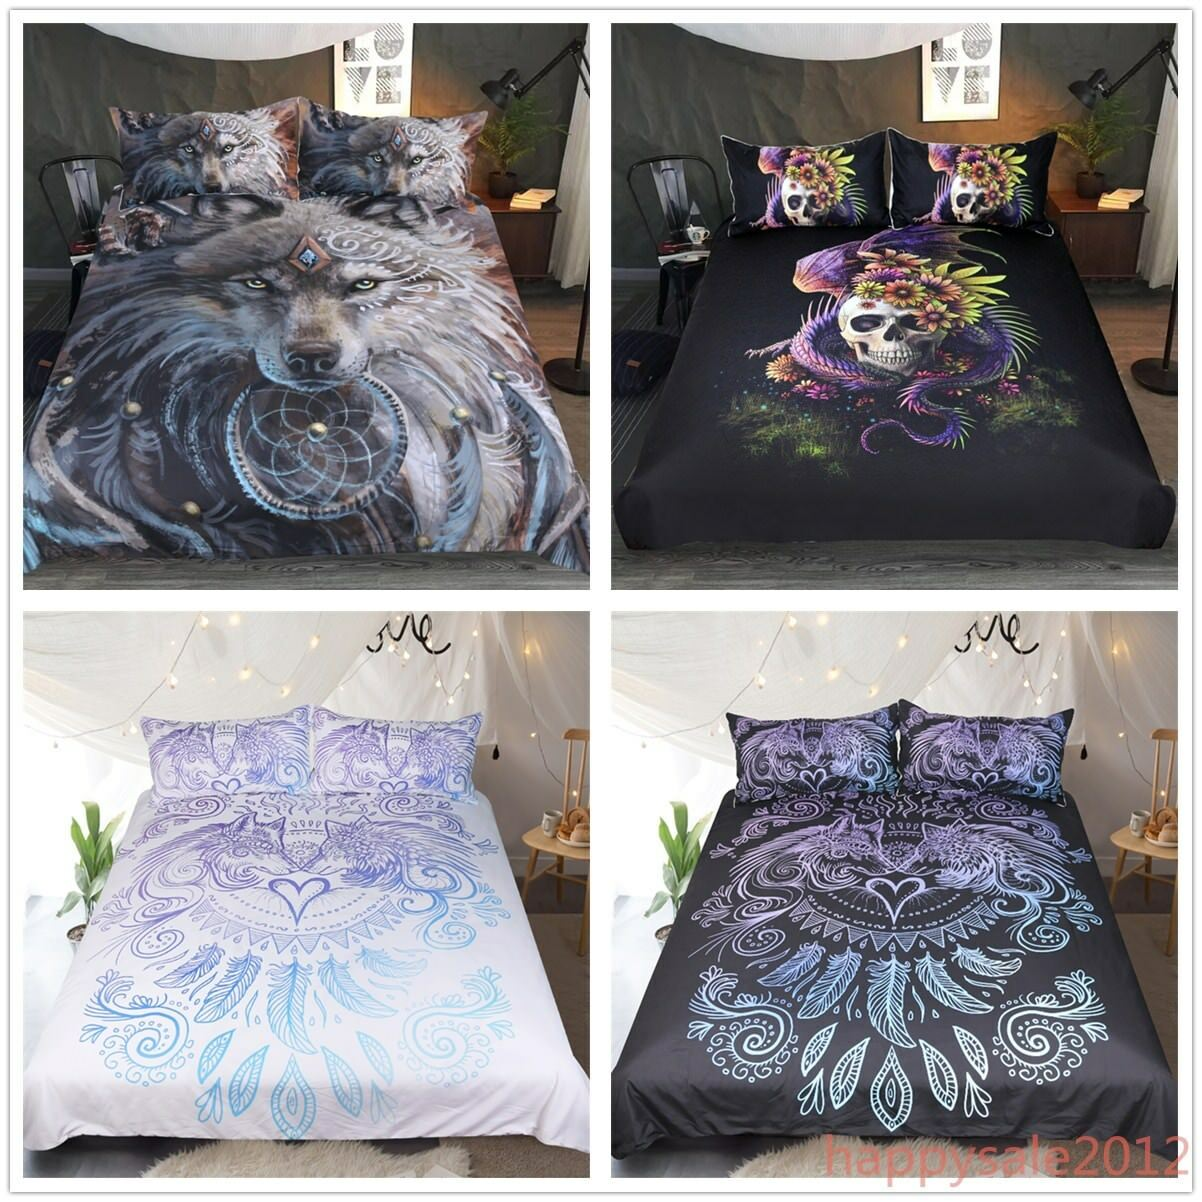 3D Alien Skull Quilt Cover Bedding Set Warrior Wolf Duvet Cover Set Pillow Cases